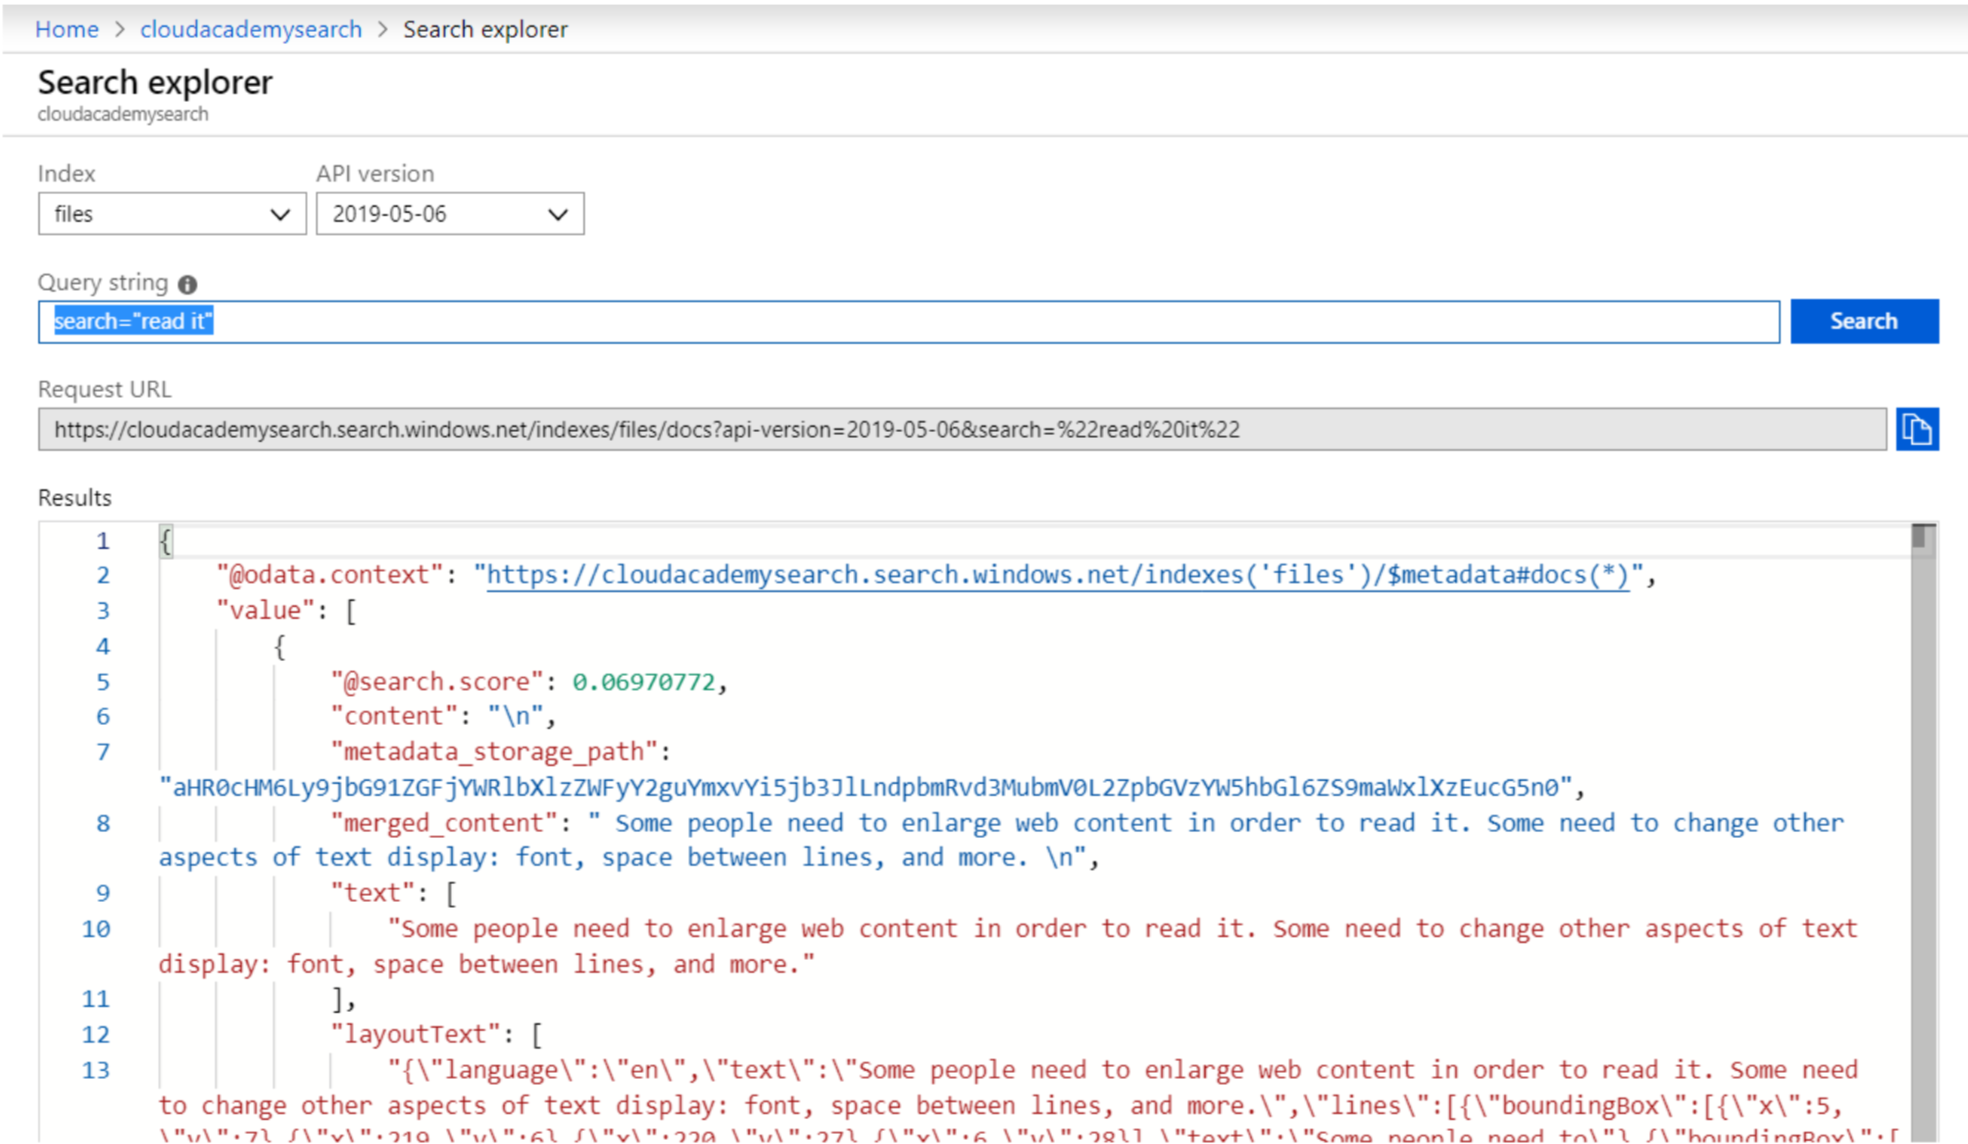 Azure Search Results